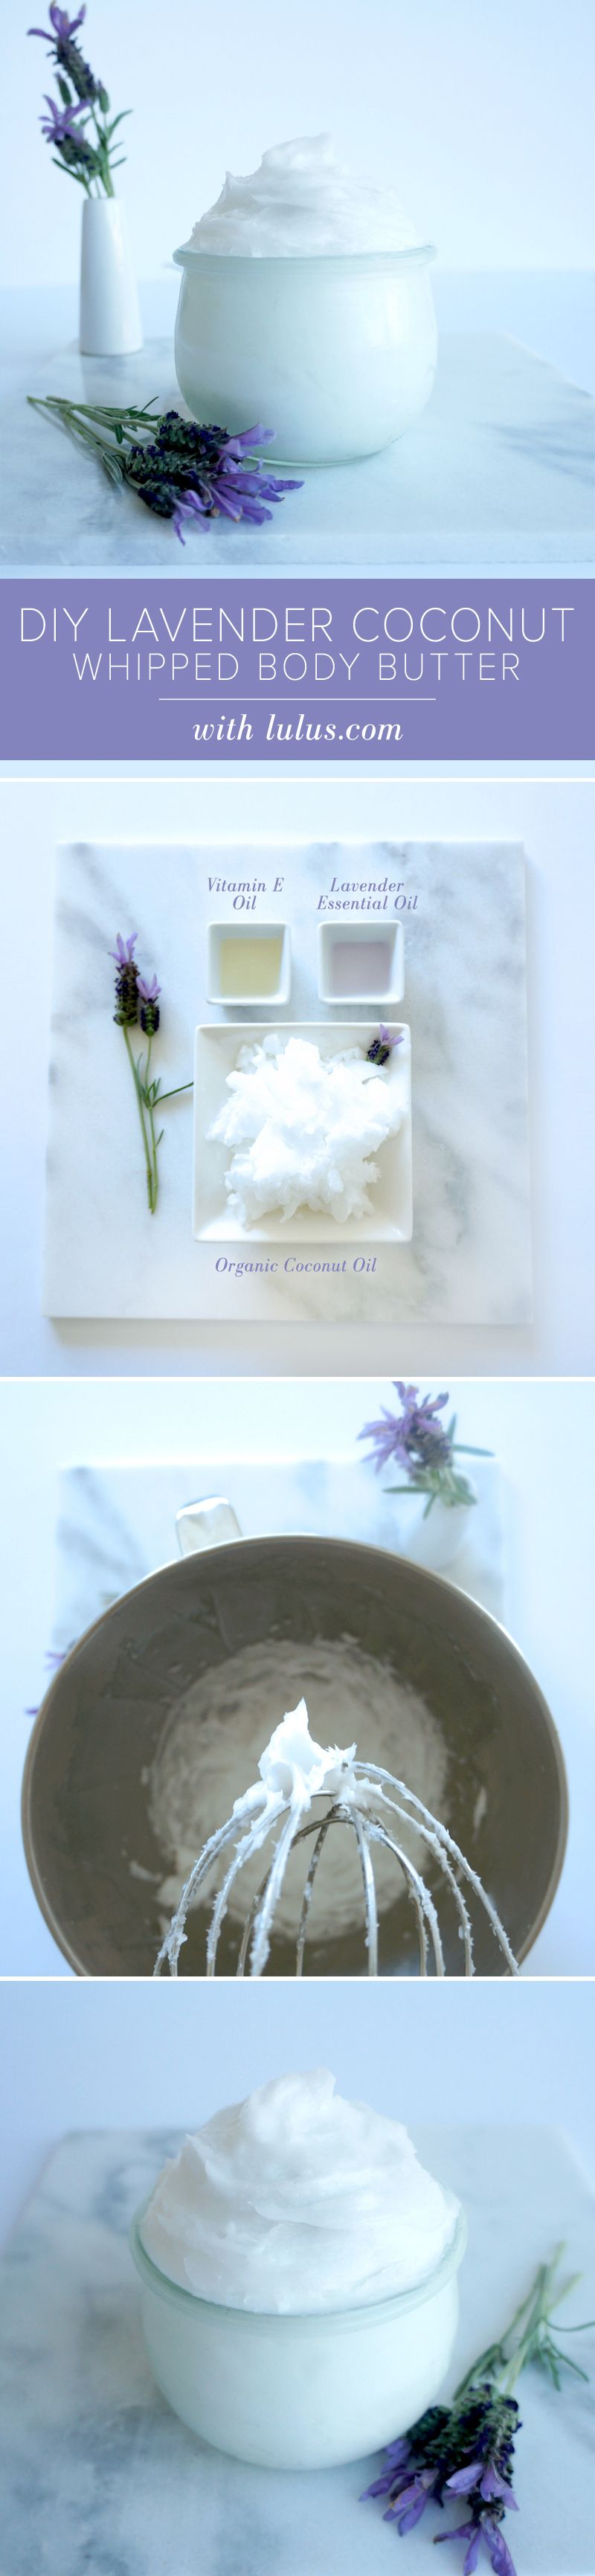 DIY Lavender Coconut Whipped Body Butter